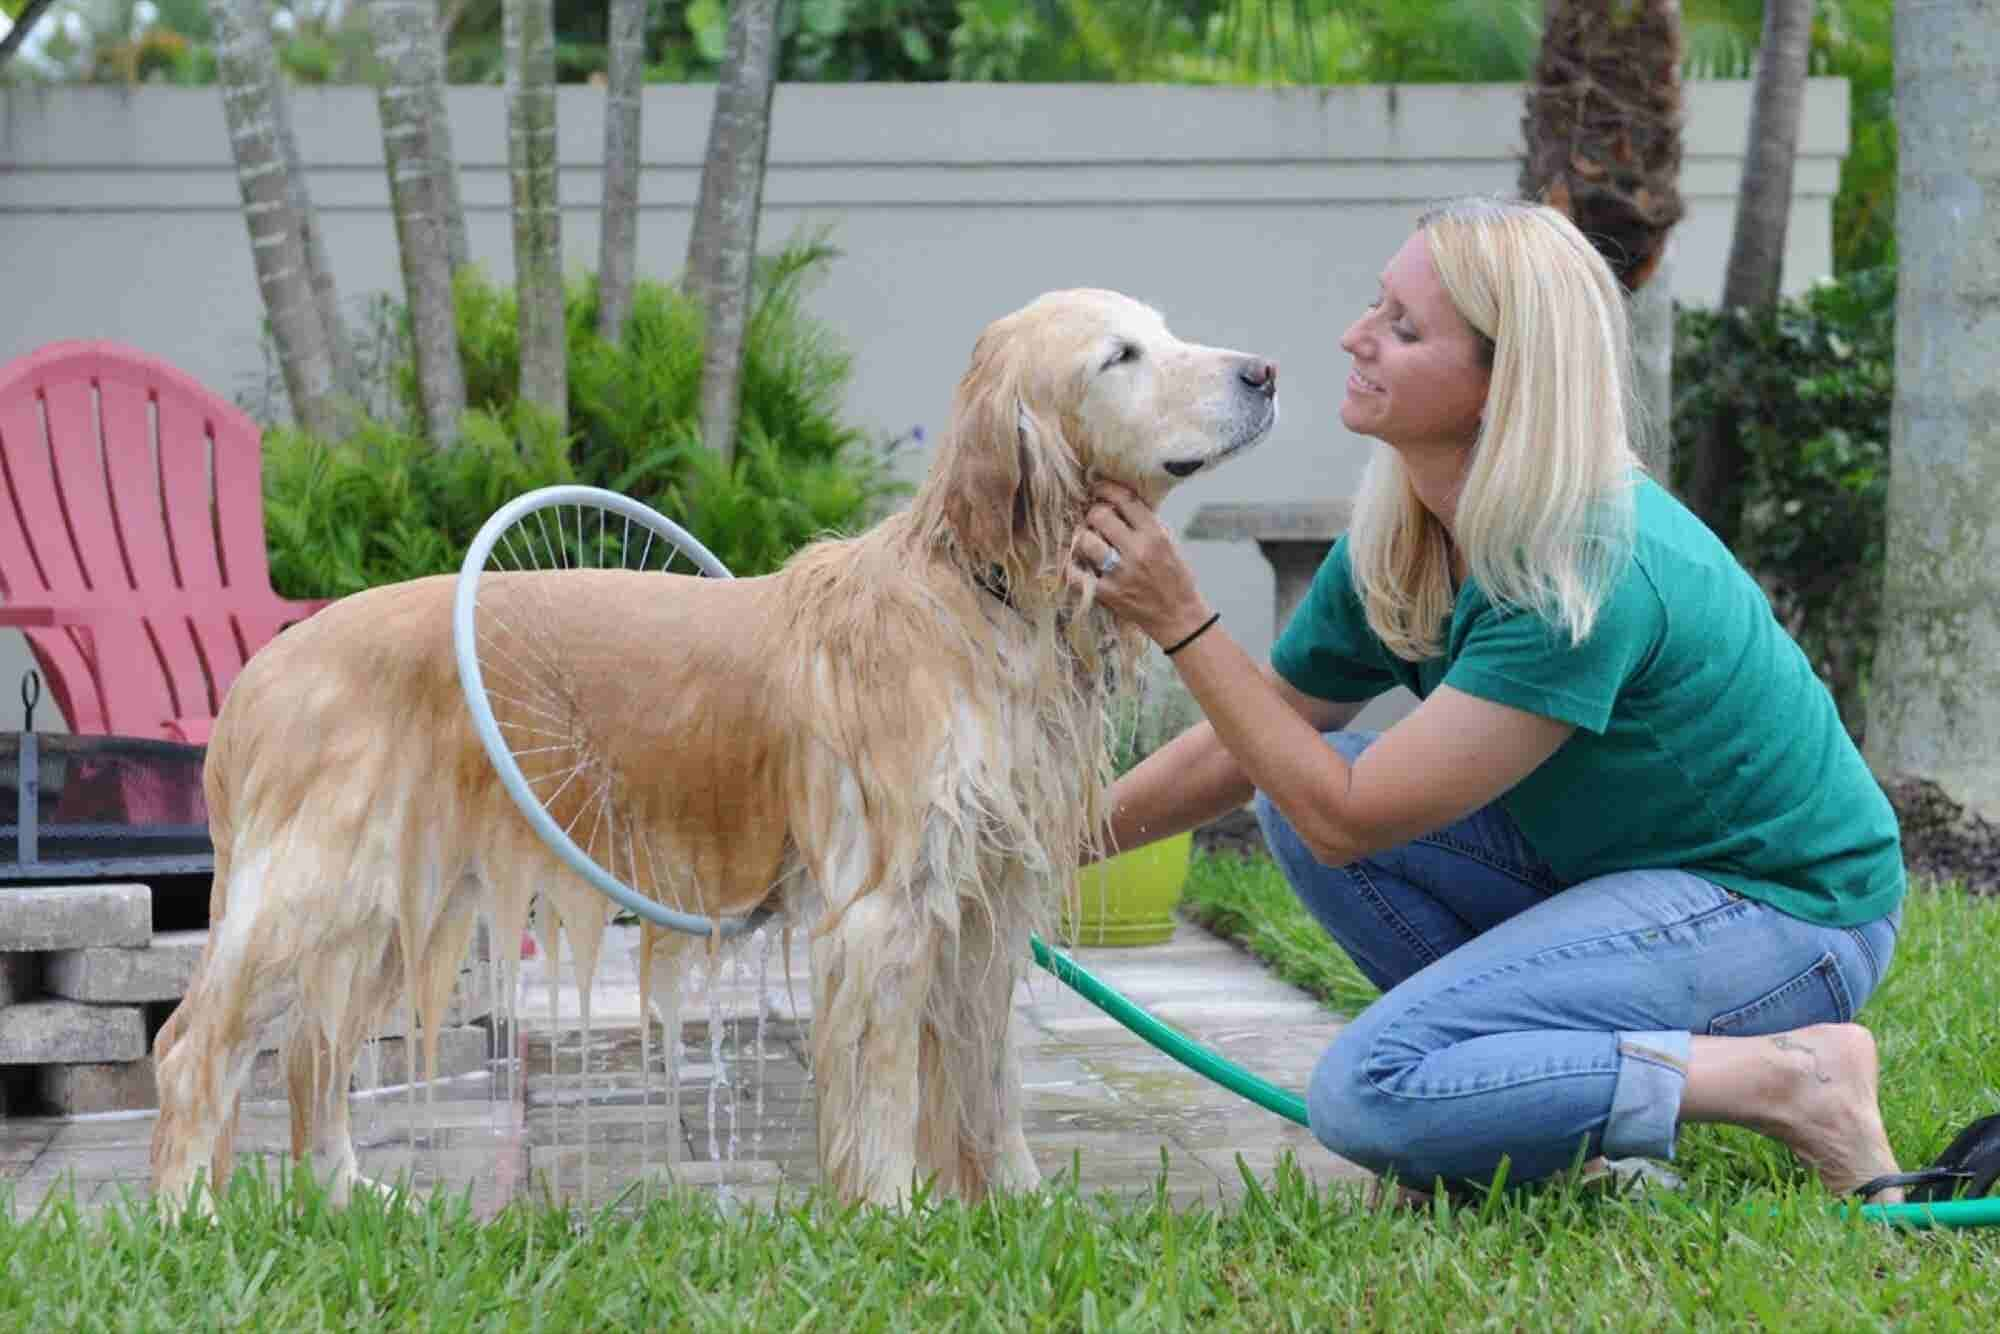 After Years of Struggle, Pet-Washer Inventor Celebrates Viral Video Success